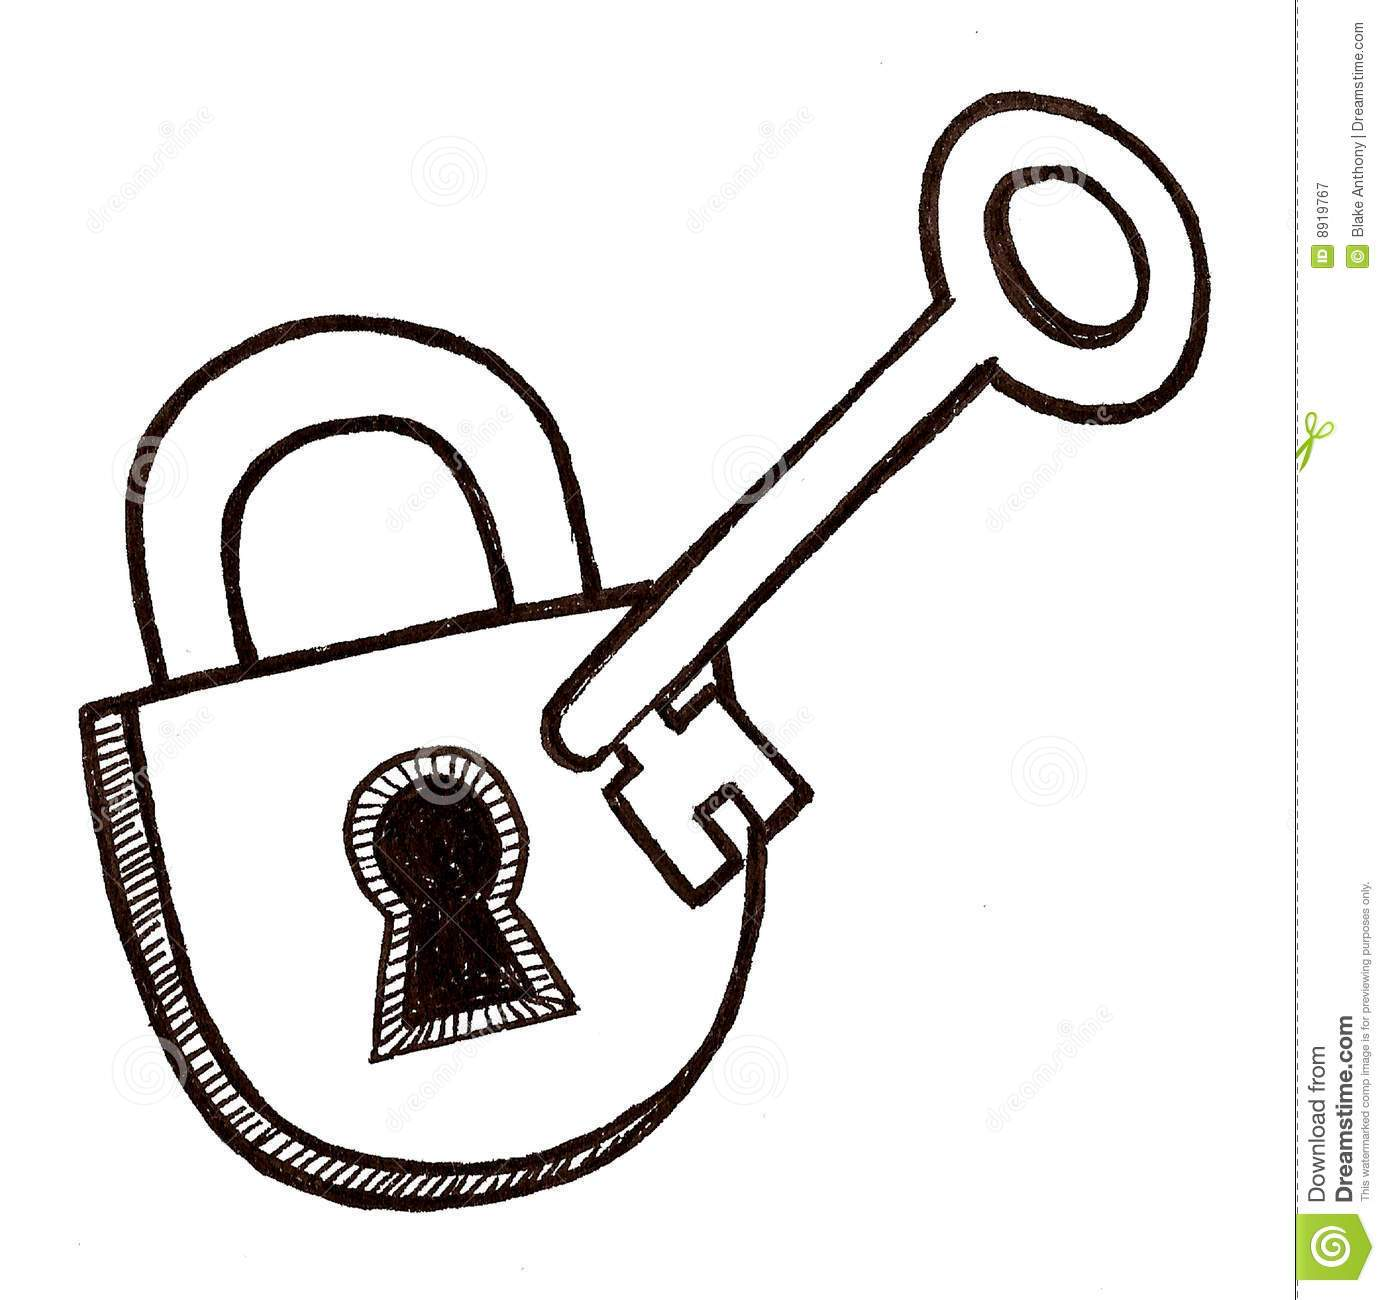 Lock and key clipart black and white clip transparent download Lock and key clipart black and white 3 » Clipart Portal clip transparent download